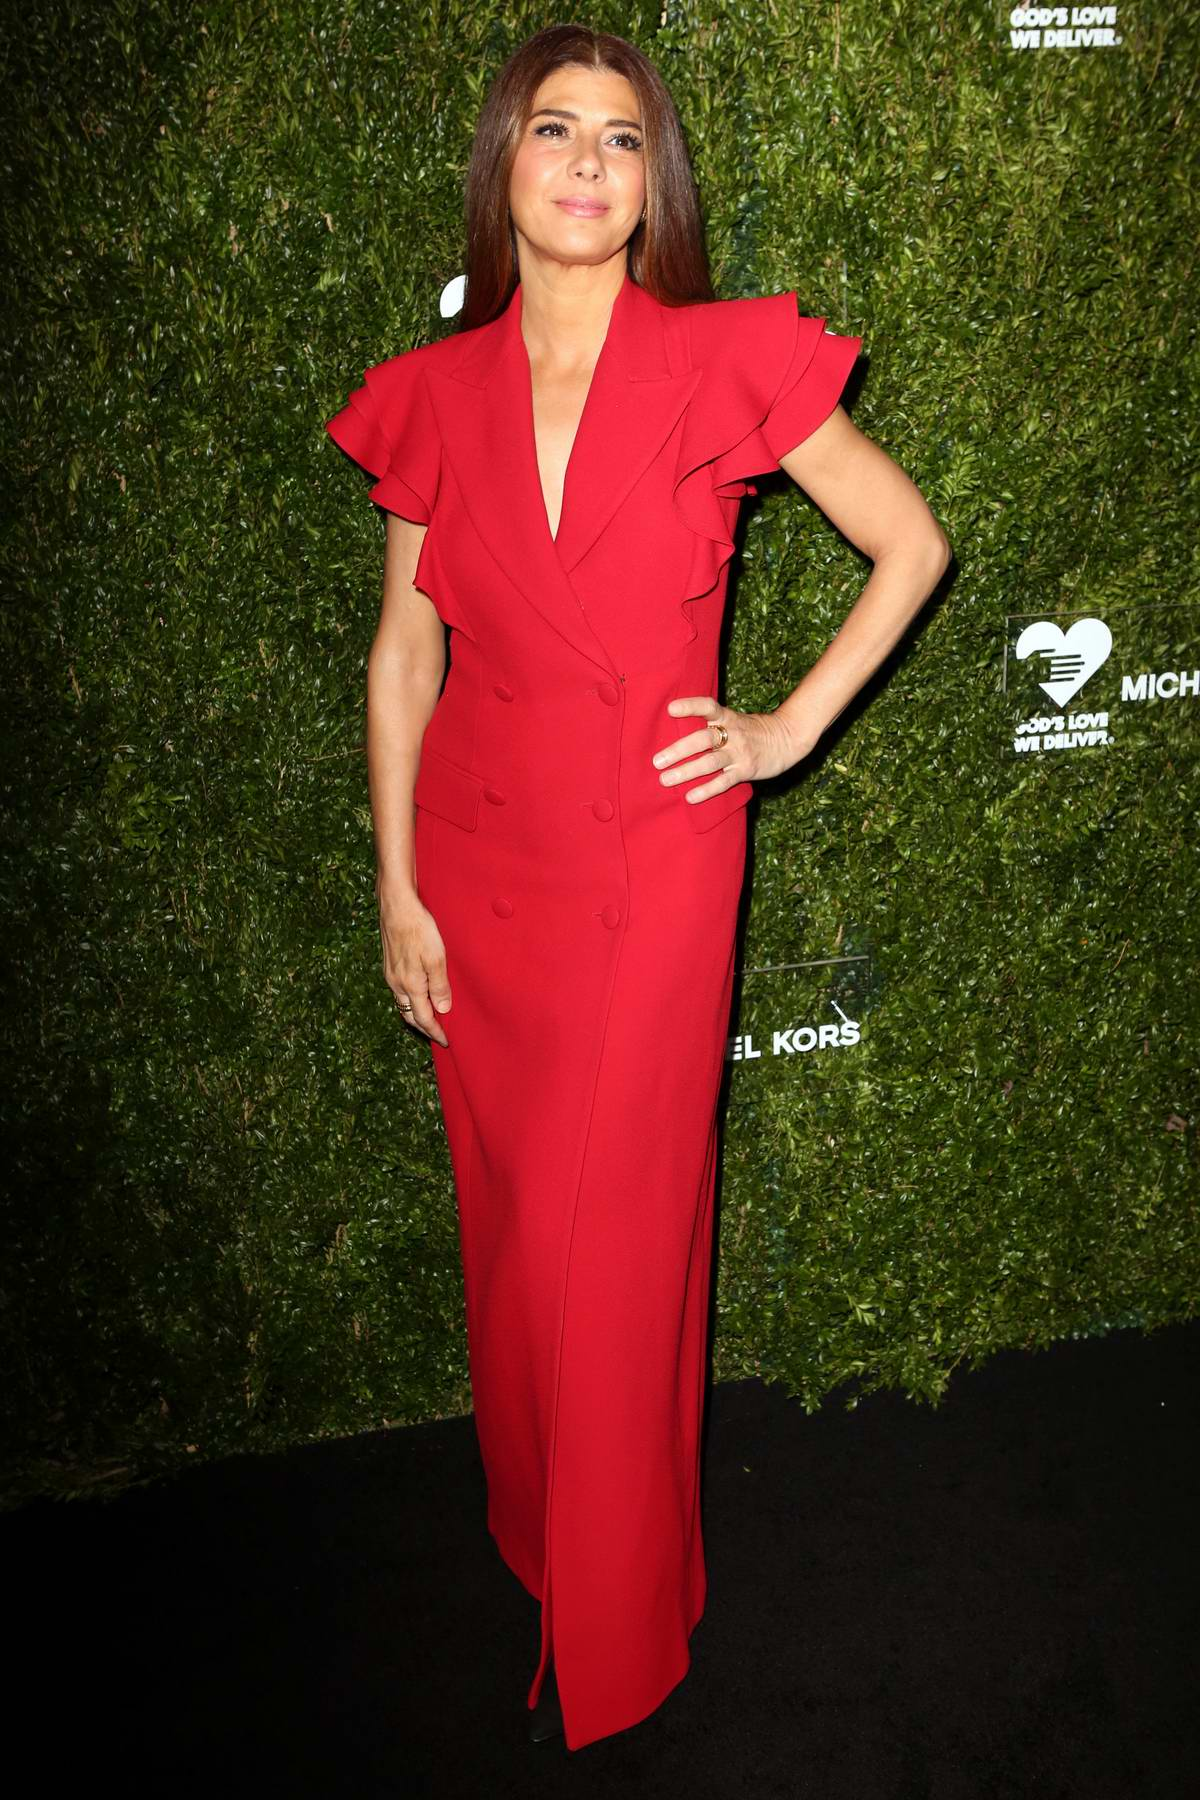 Marisa Tomei attends God's Love We Deliver 13th Annual Golden Heart Awards Celebration at Cipriani South Street in New York City